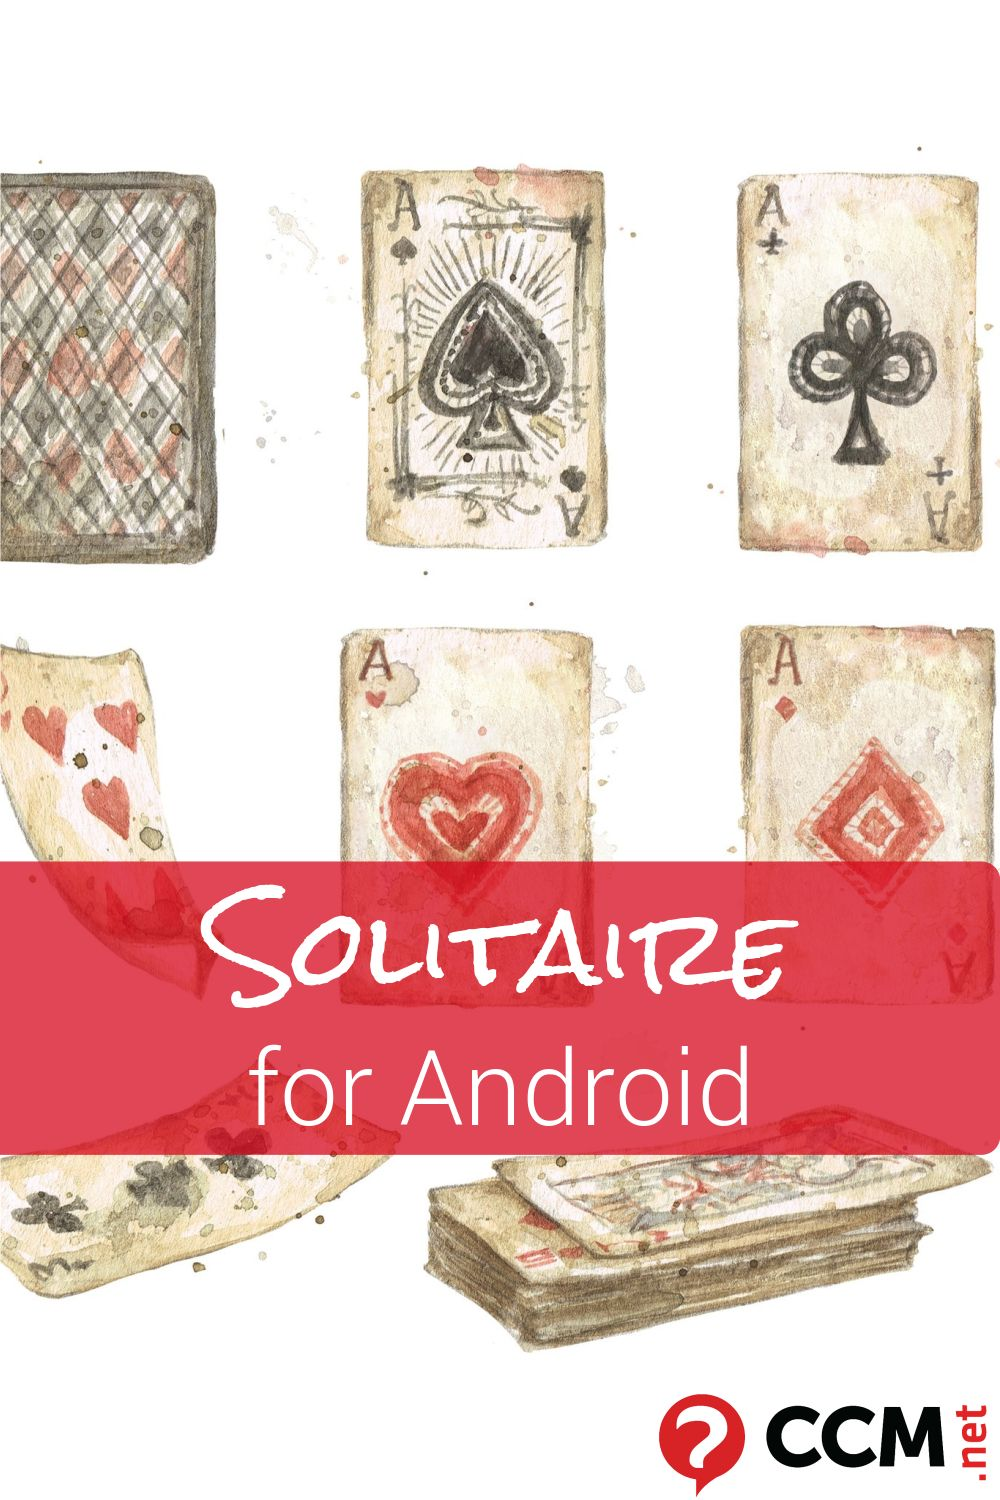 Solitaire by MobilityWare is the free application of the